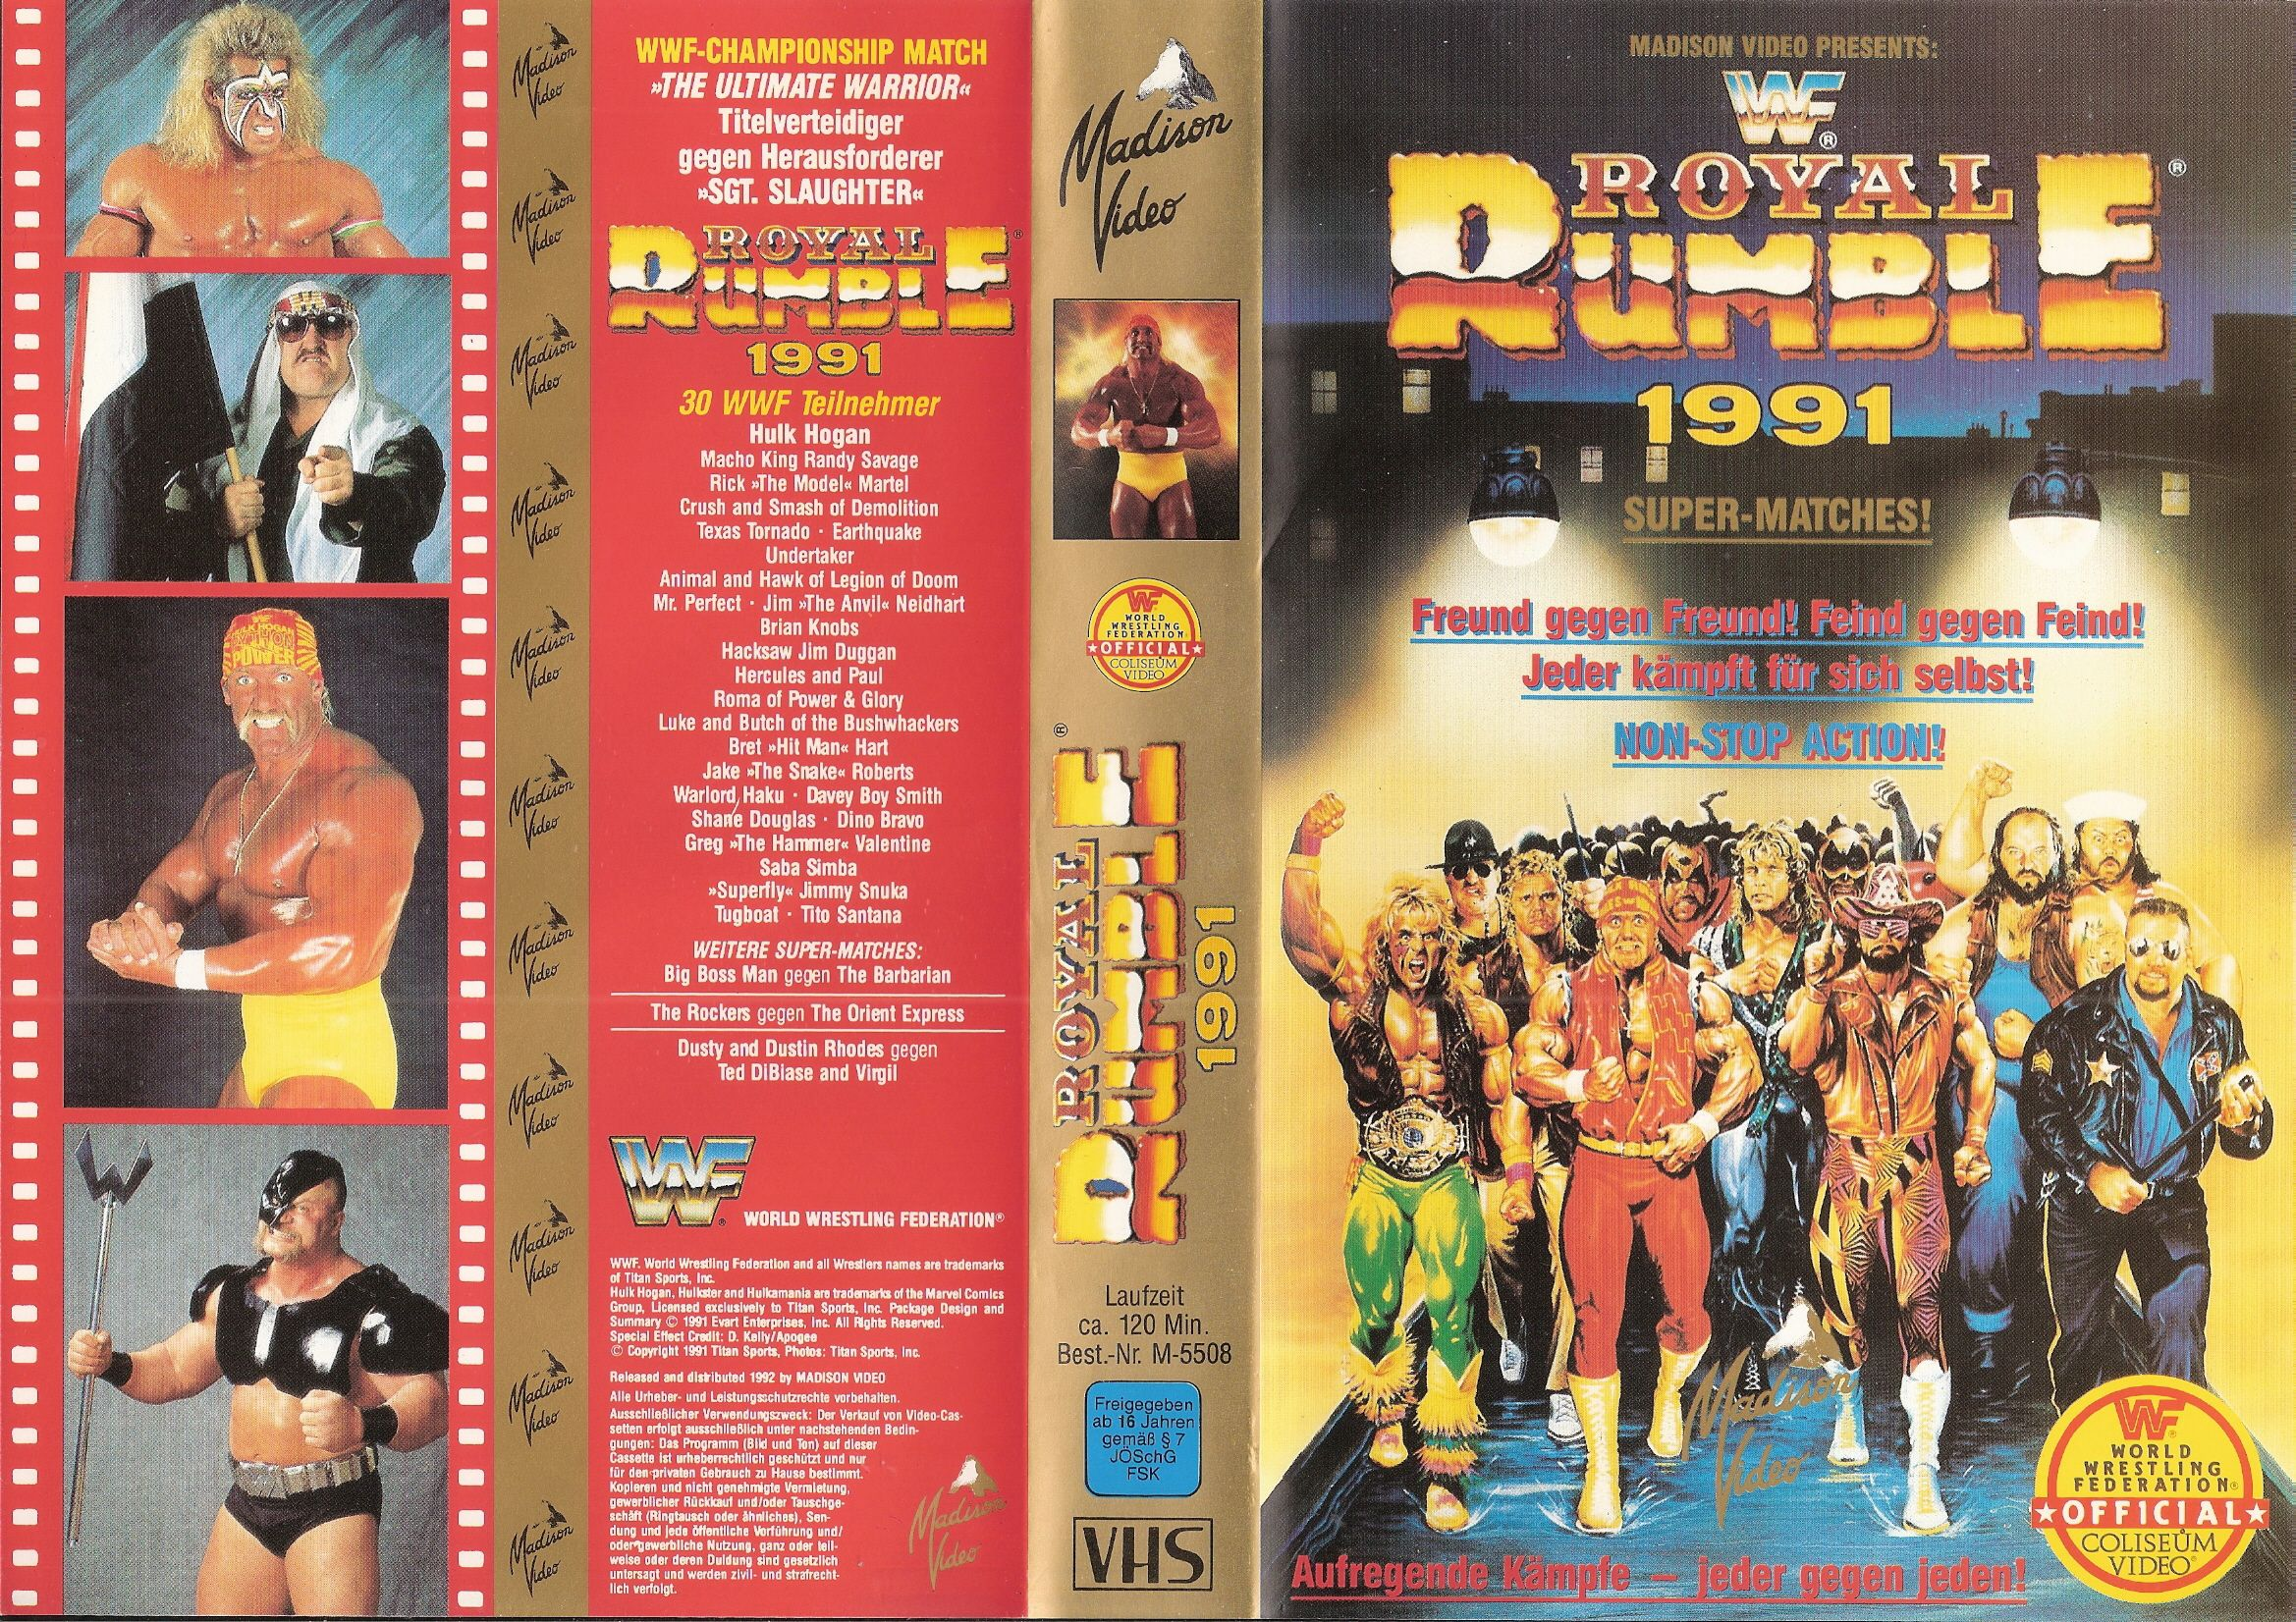 WWF_Royal_Rumble_1991_-_Cover